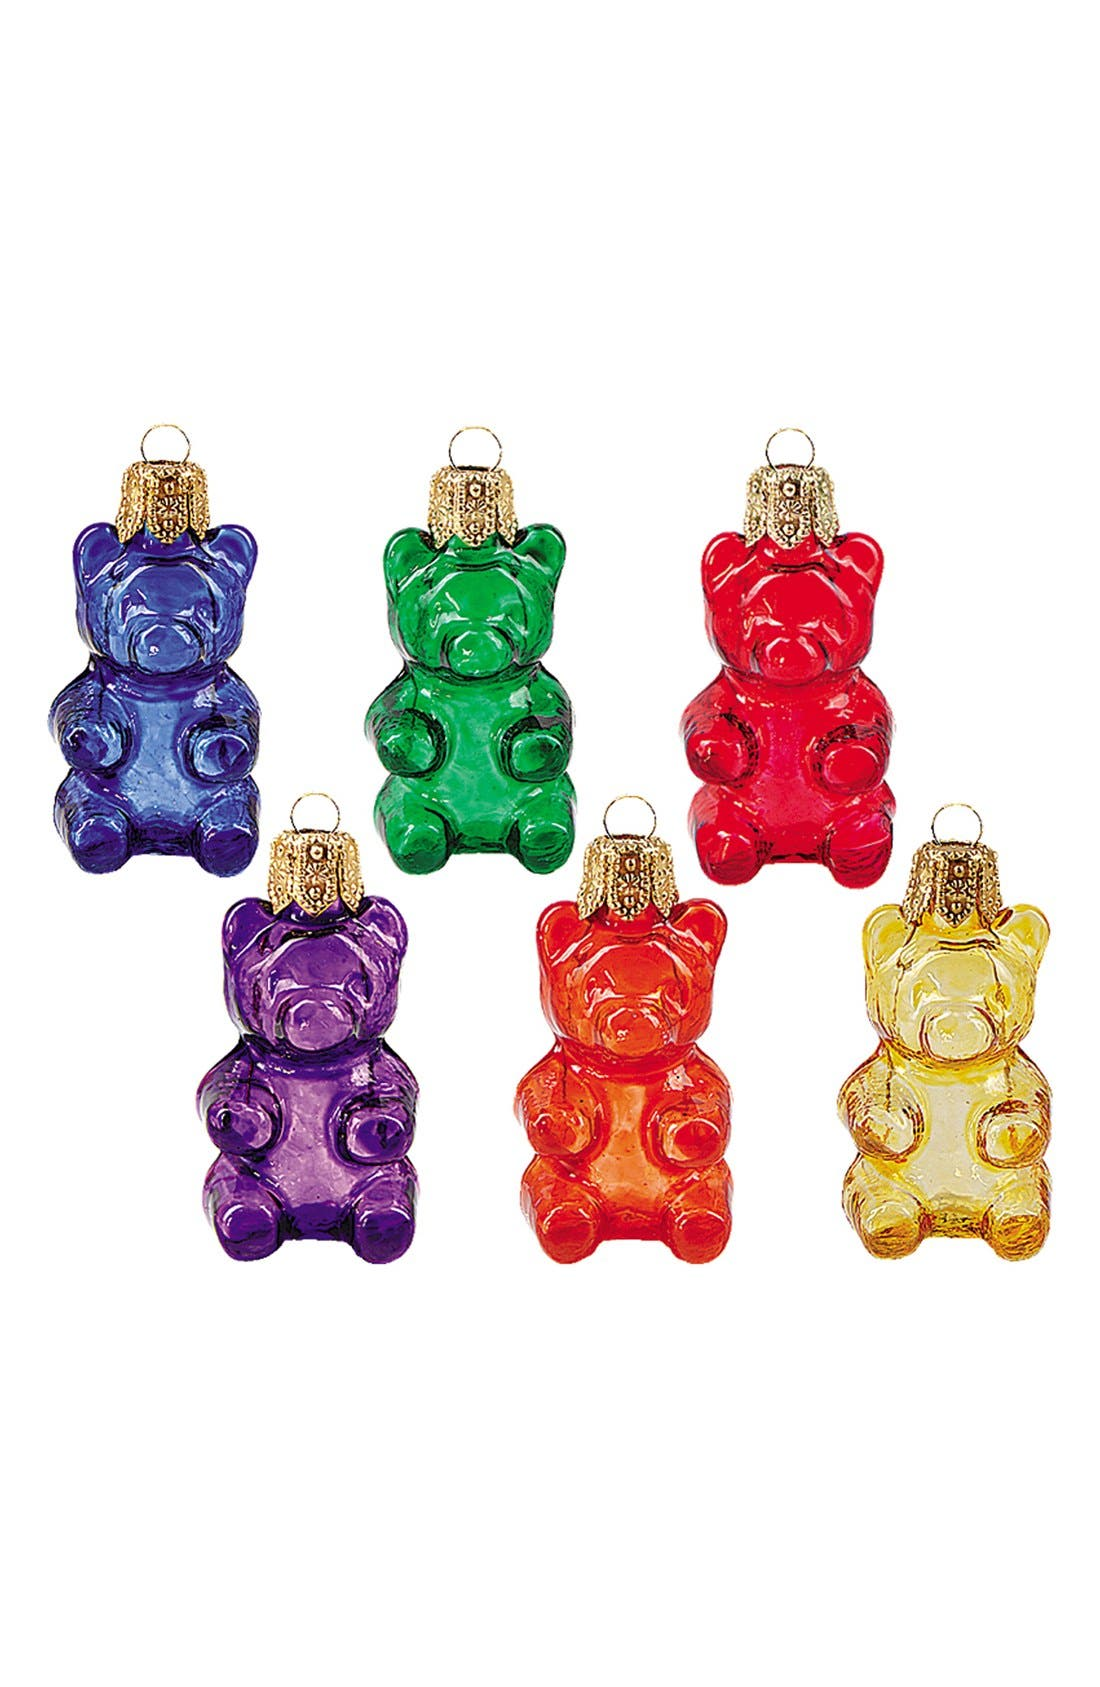 'Gummy Bears' Handblown Glass Ornaments,                         Main,                         color, Multi